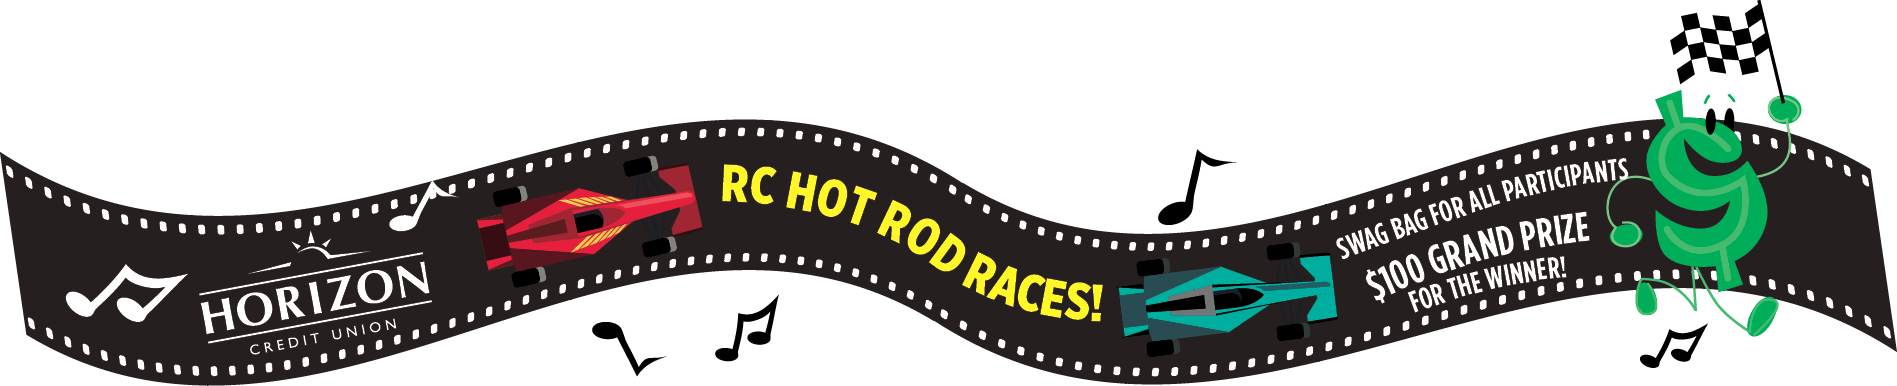 hotrodraces.png